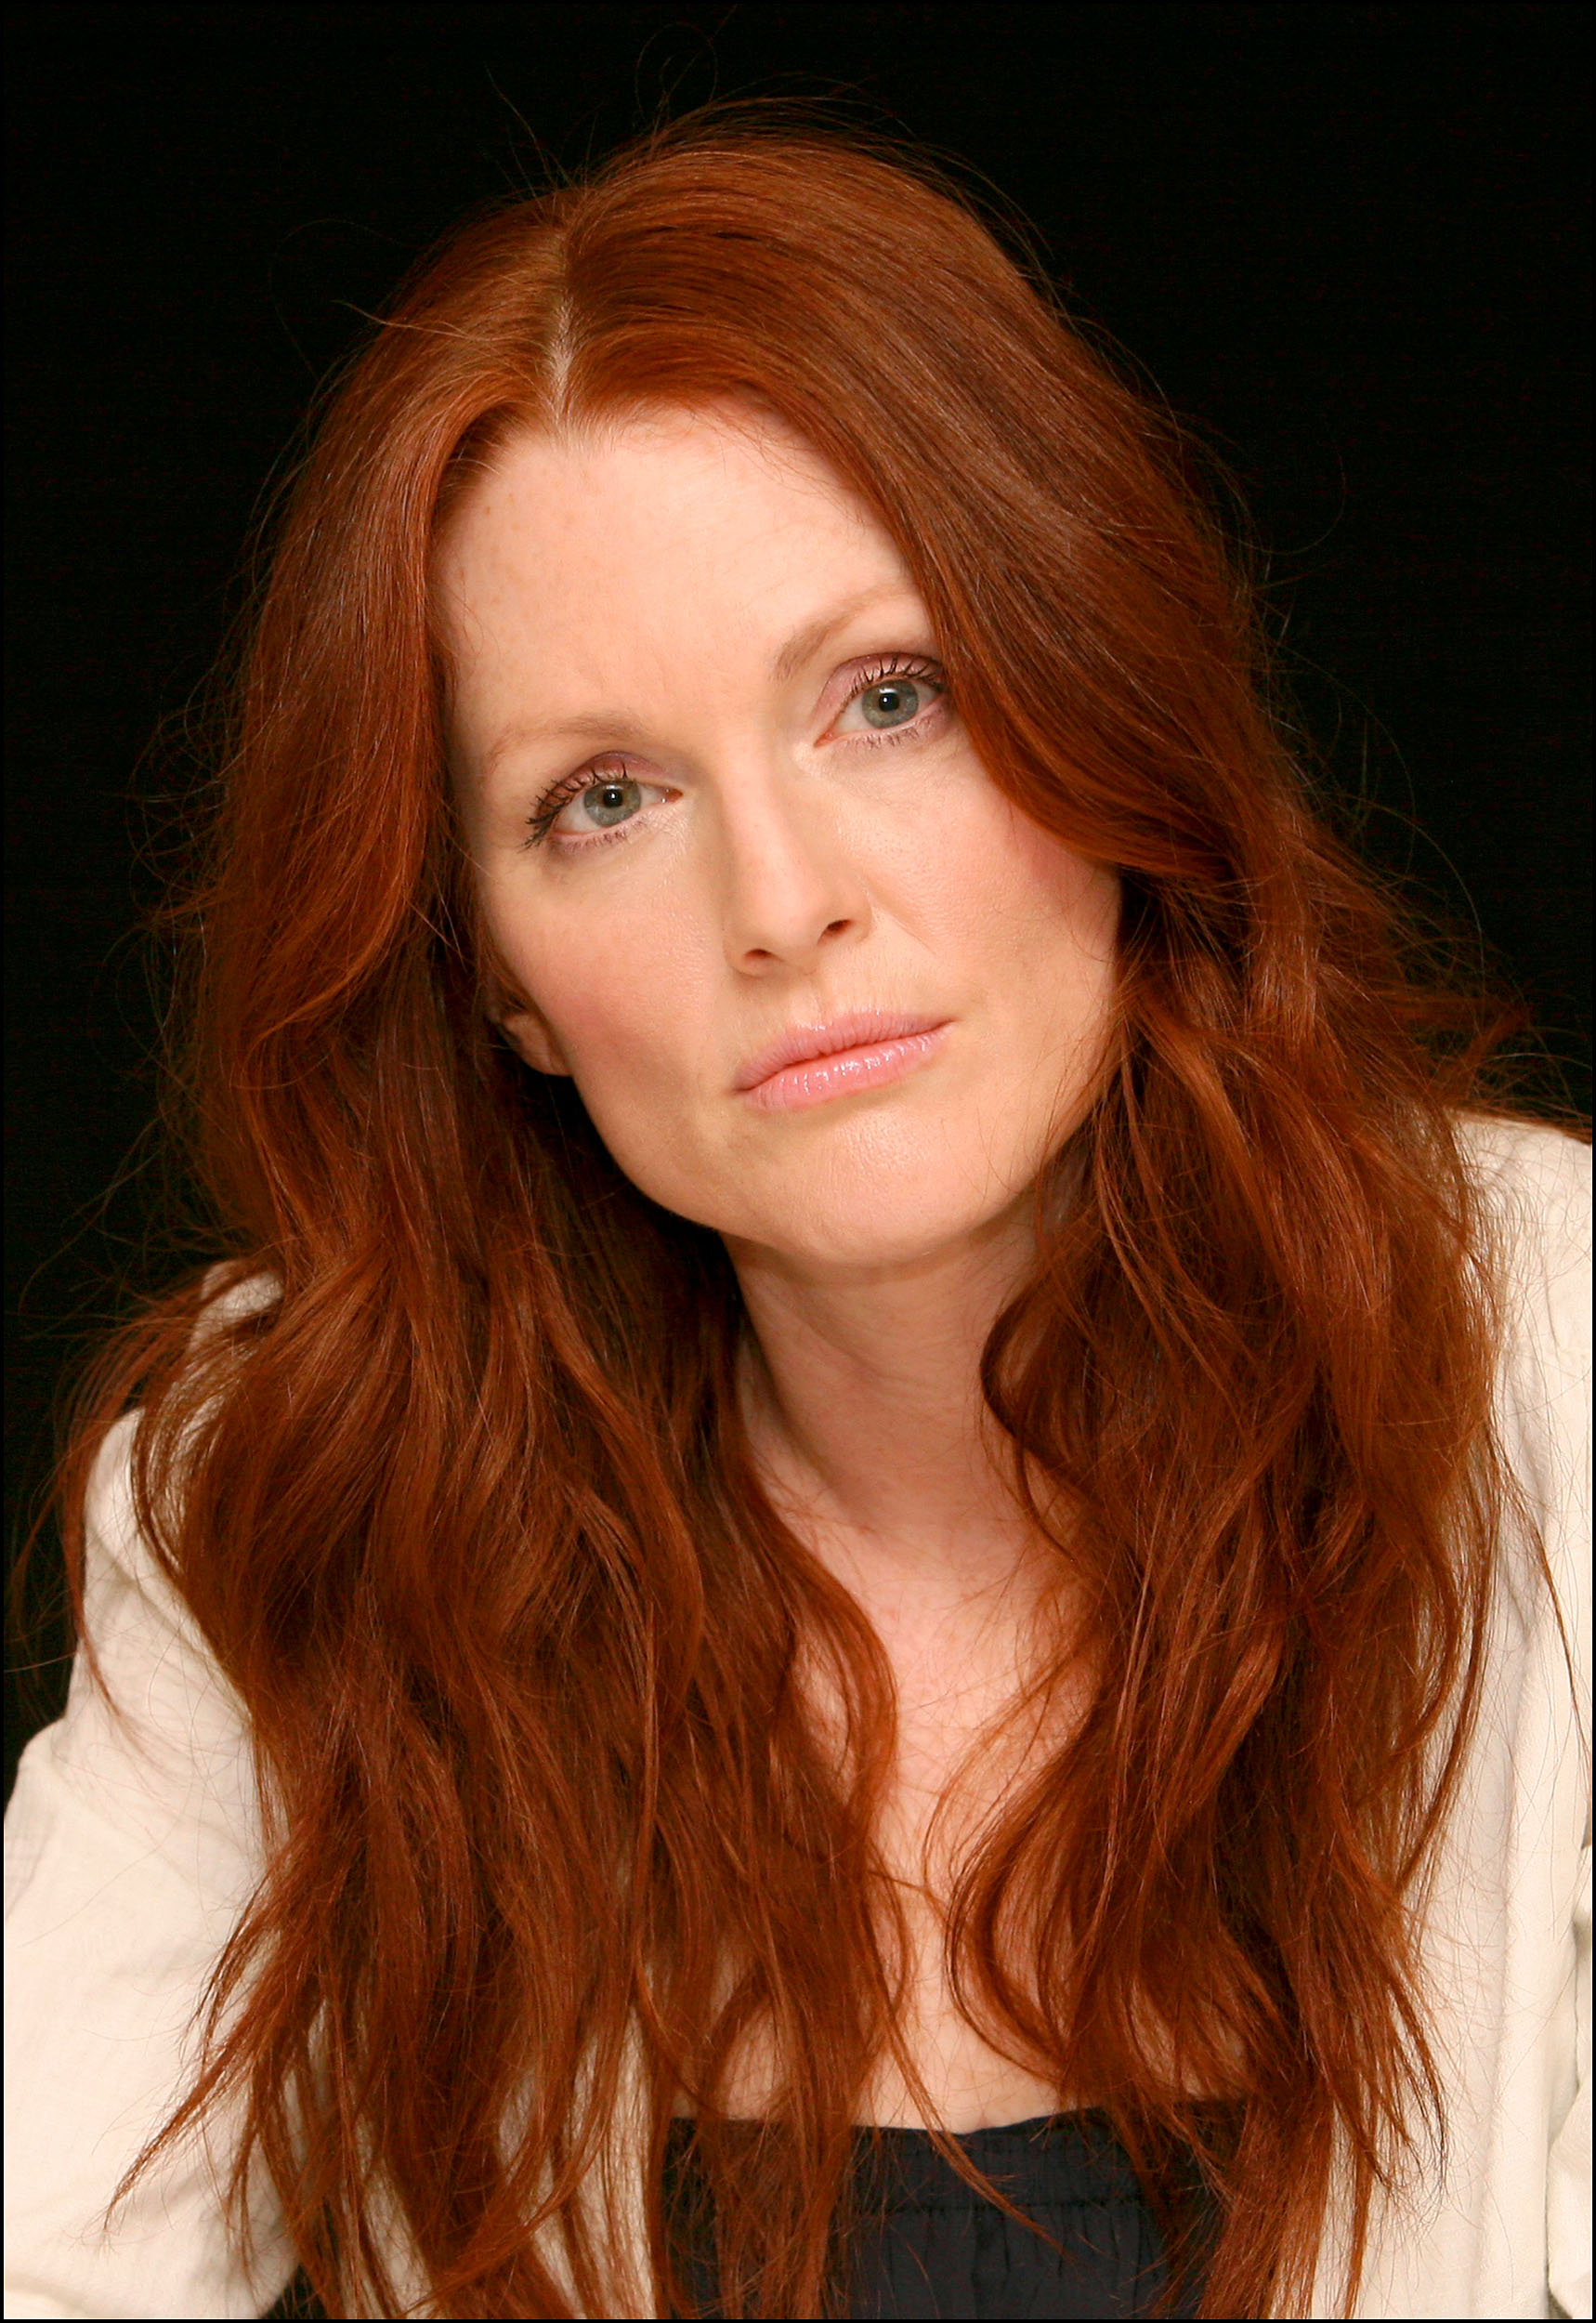 julianne moore photo 107 of 764 pics wallpaper   photo